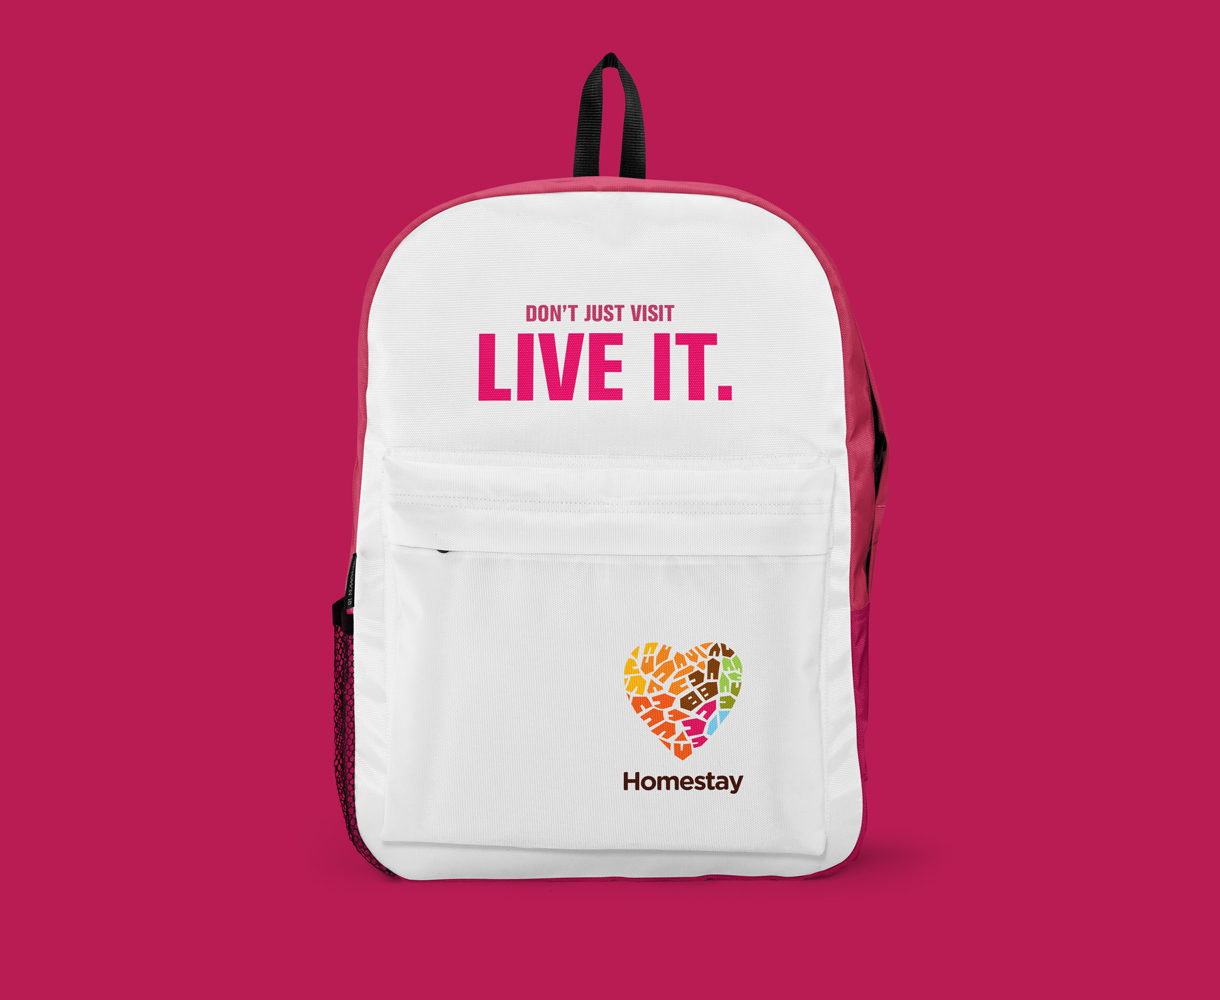 Homestay brand development promotional materials backpack